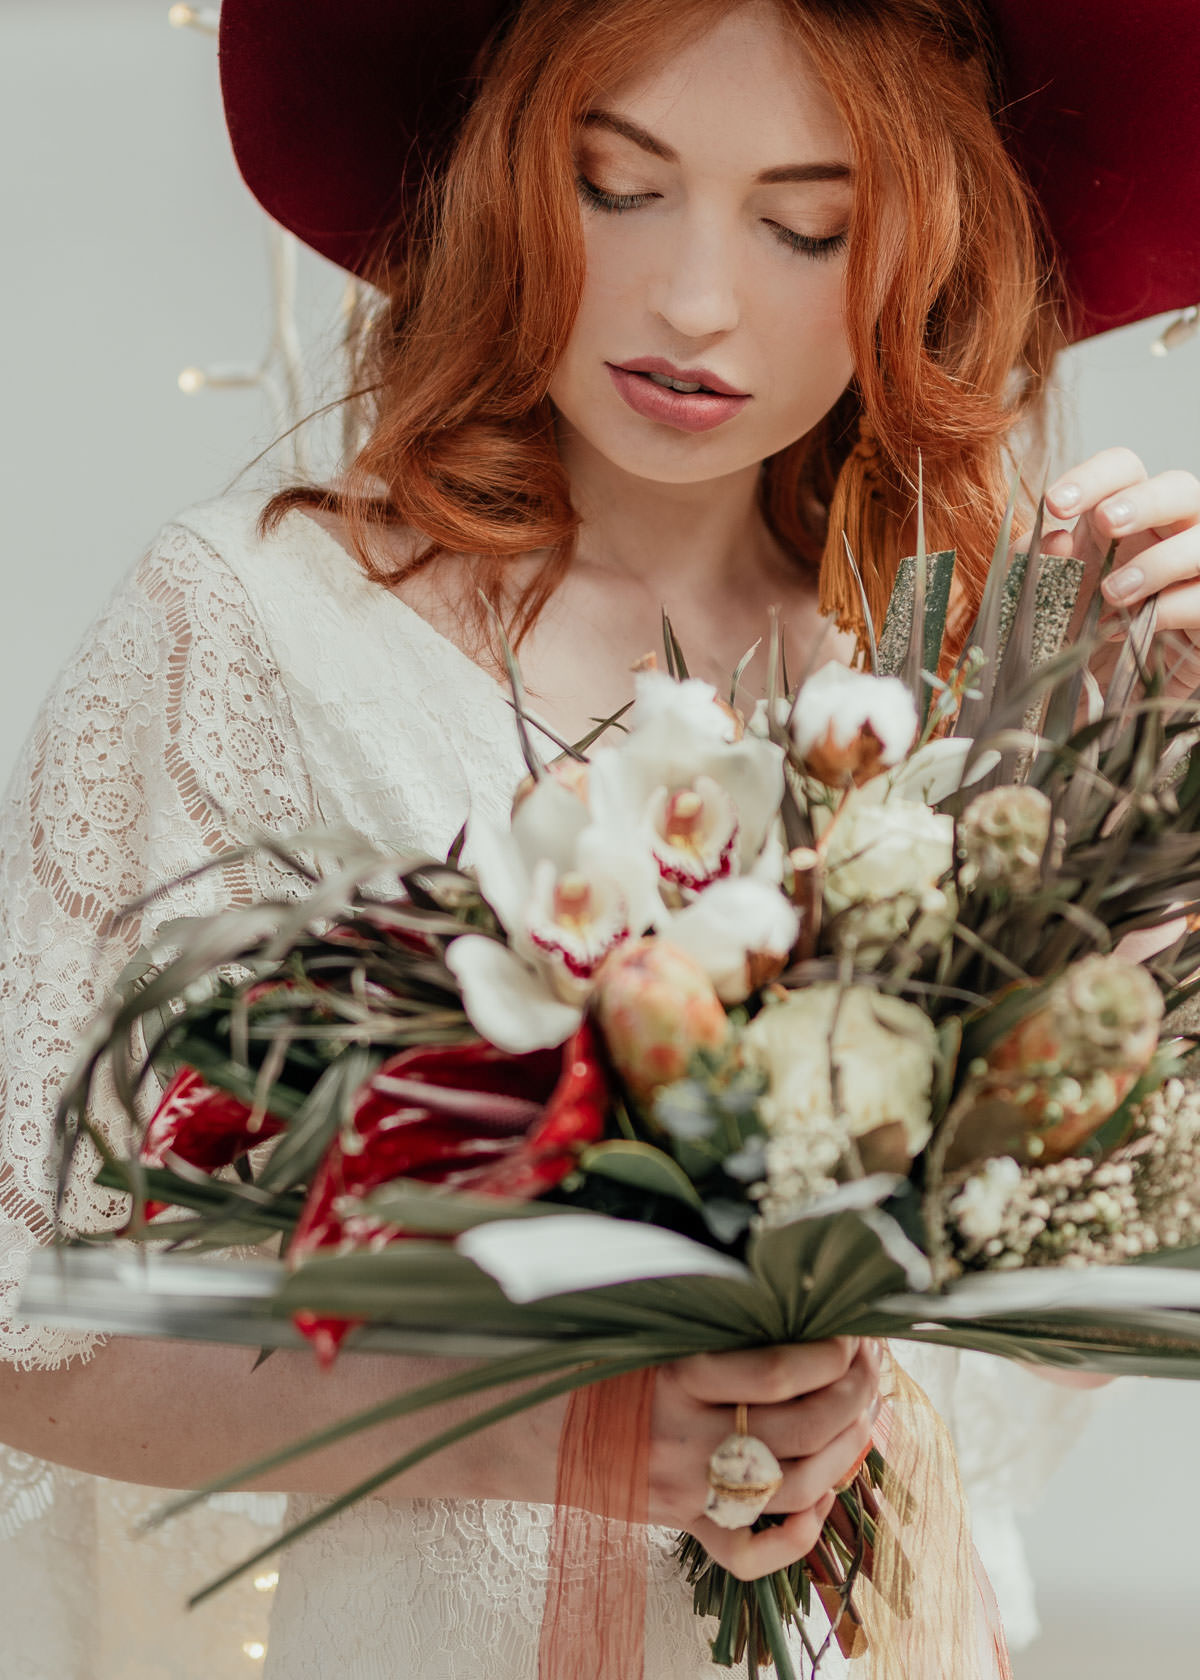 Industrial Meets Boho Wedding Inspiration: Red head bride wearing hat and holding wedding bouquet